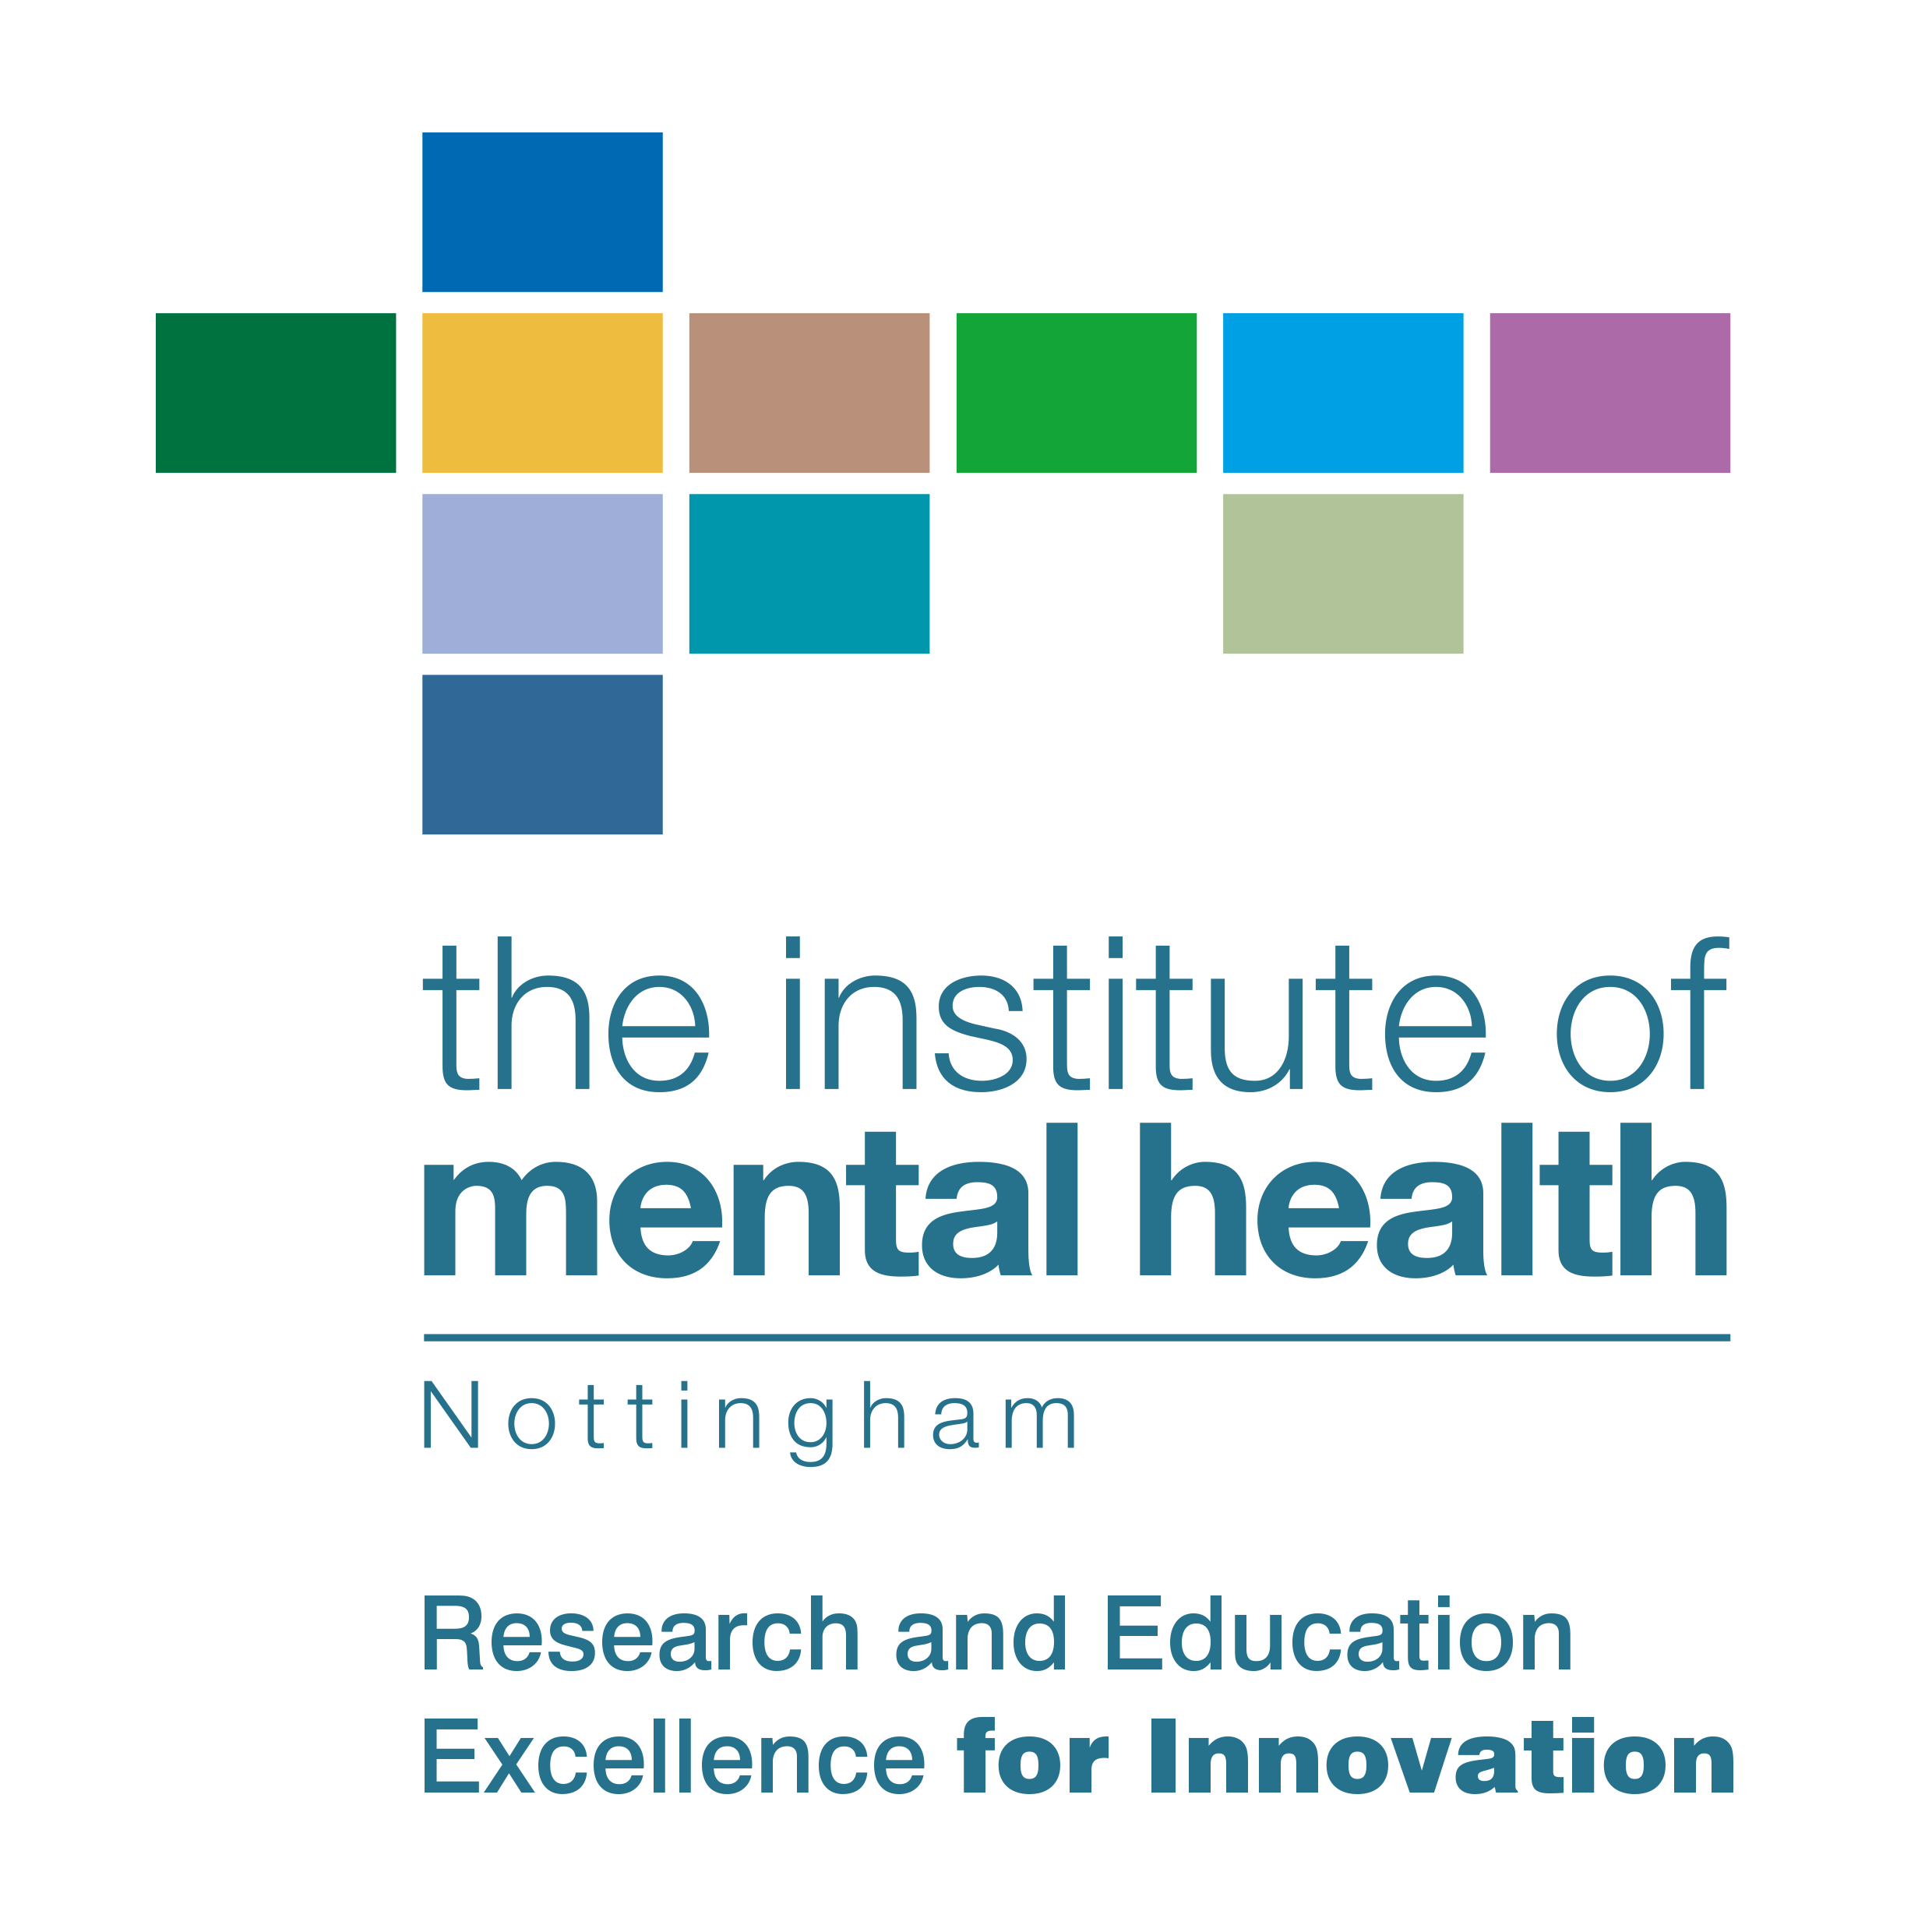 The  institue of mental health nottingham